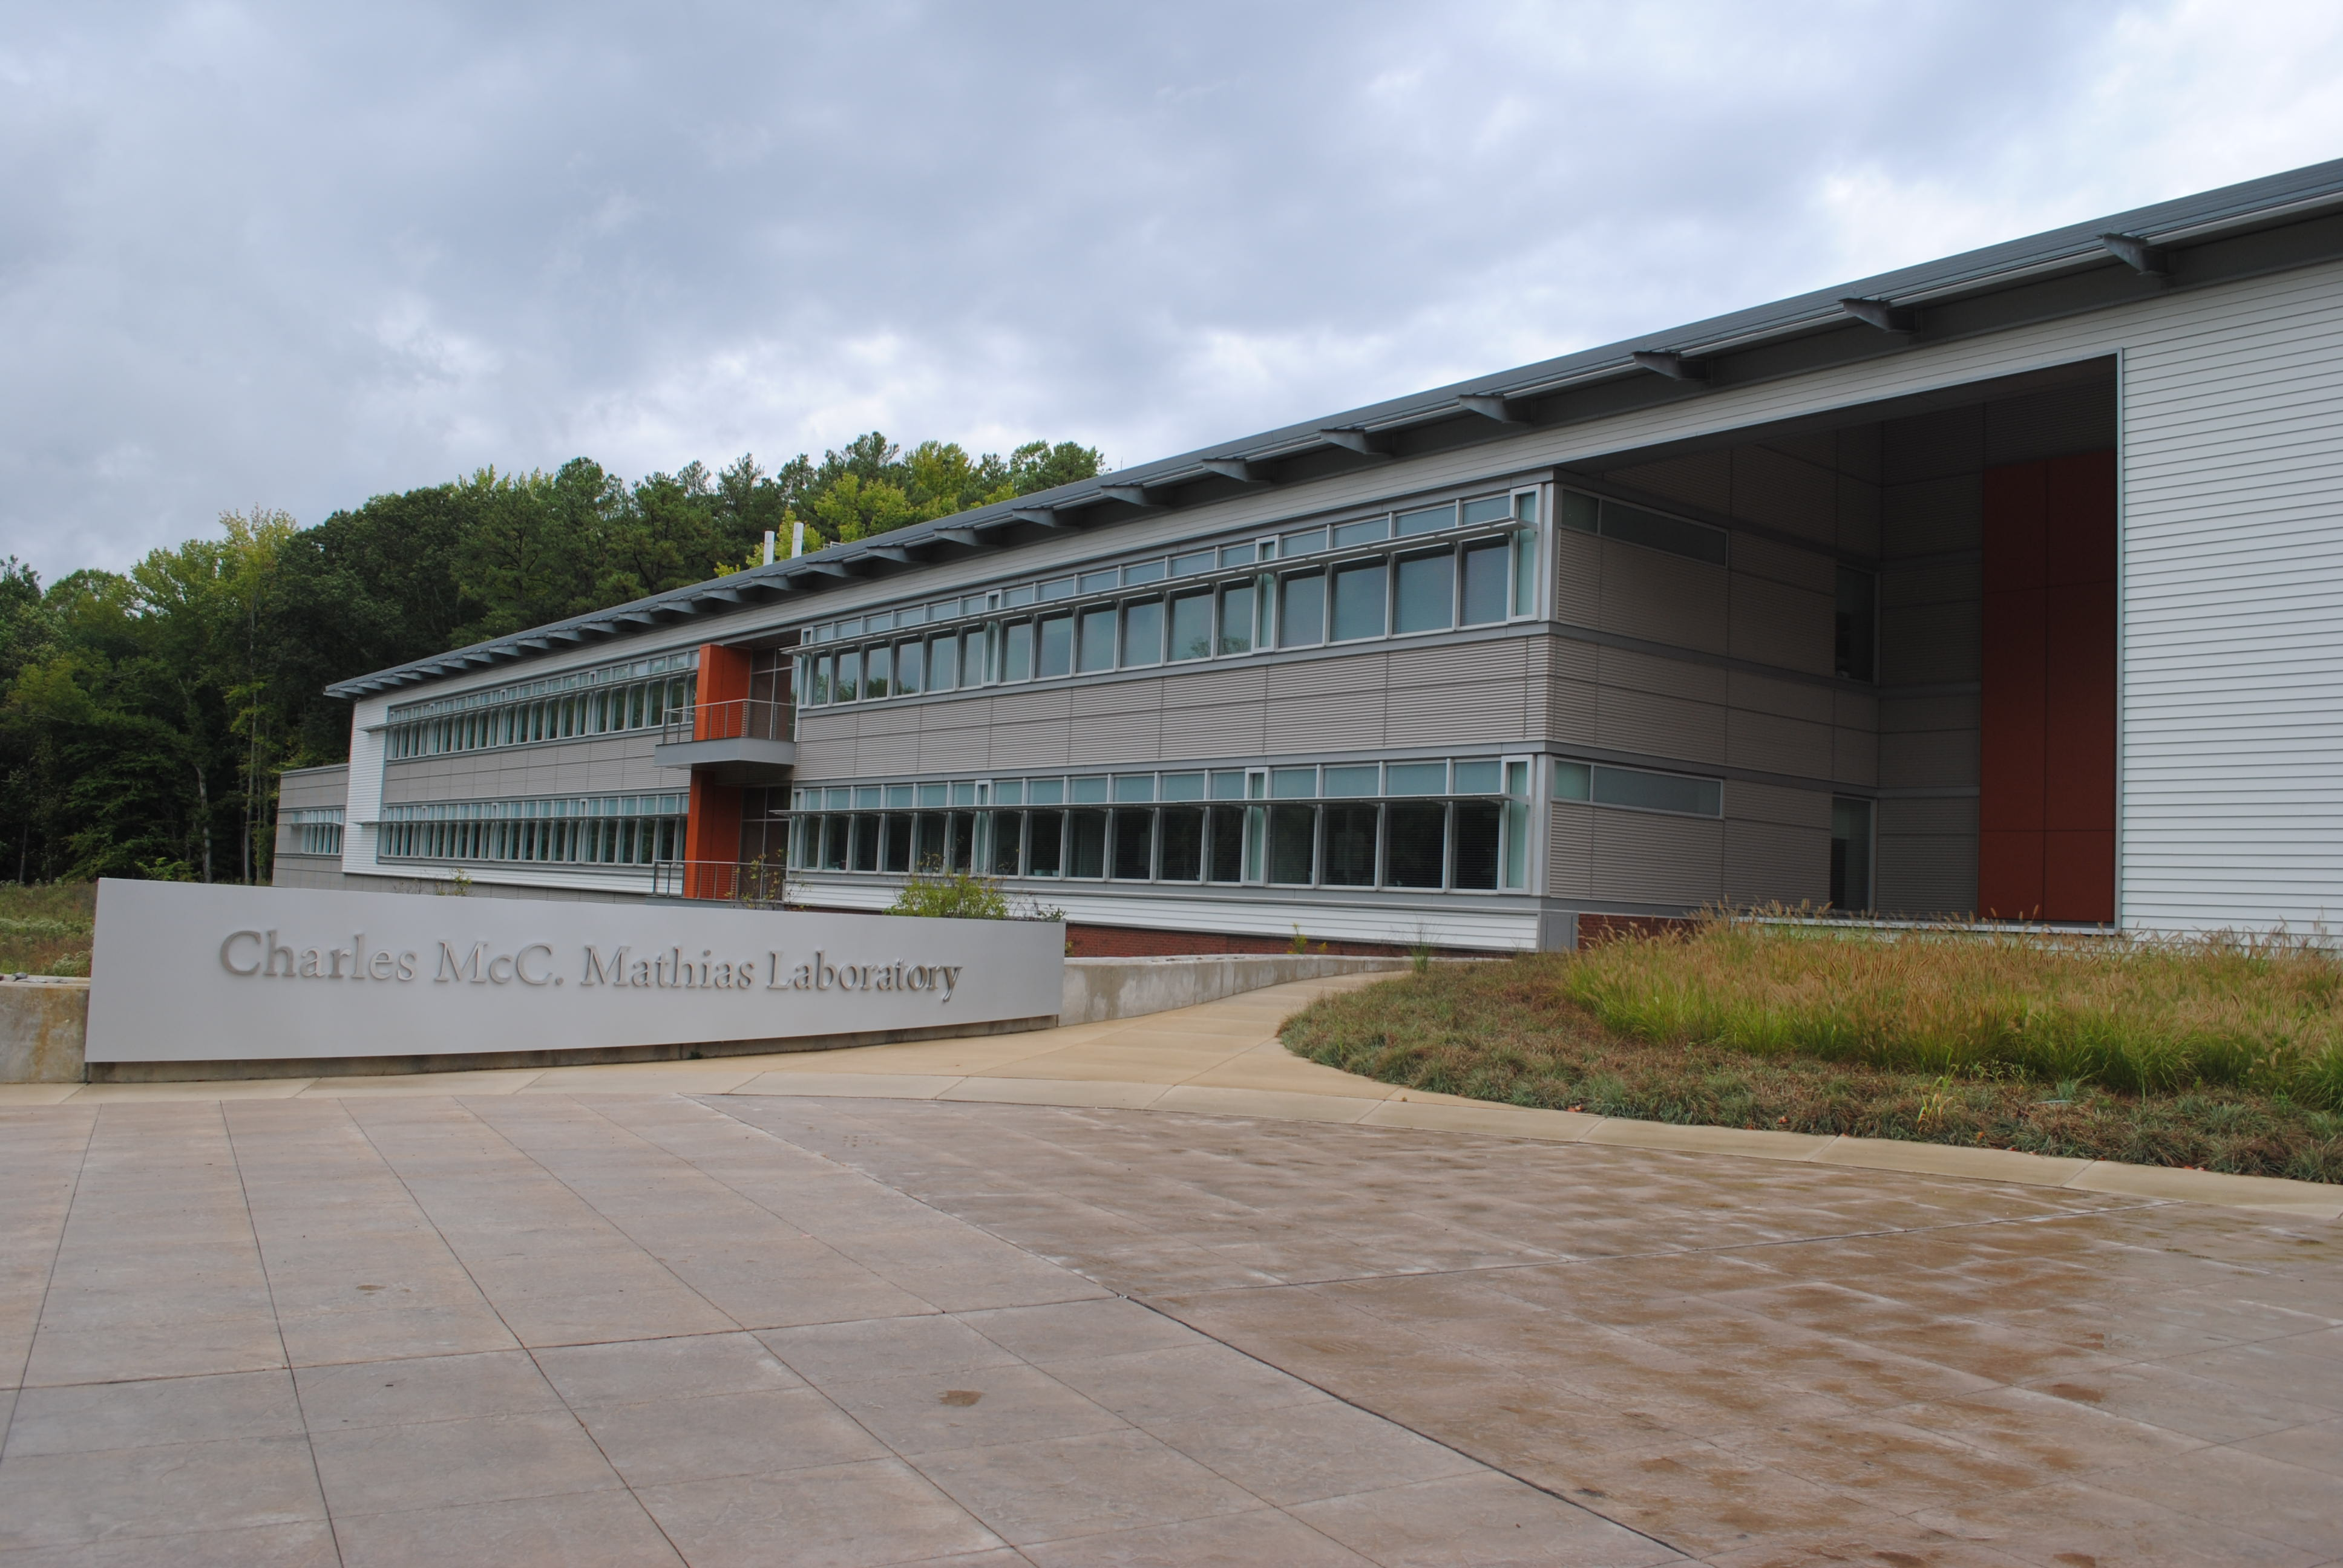 The Charles McC. Mathias Laboratory. Behind the sign is a series of cascading wetland pools containing native plants. Photo by Kira Sobers, September 12, 2015.